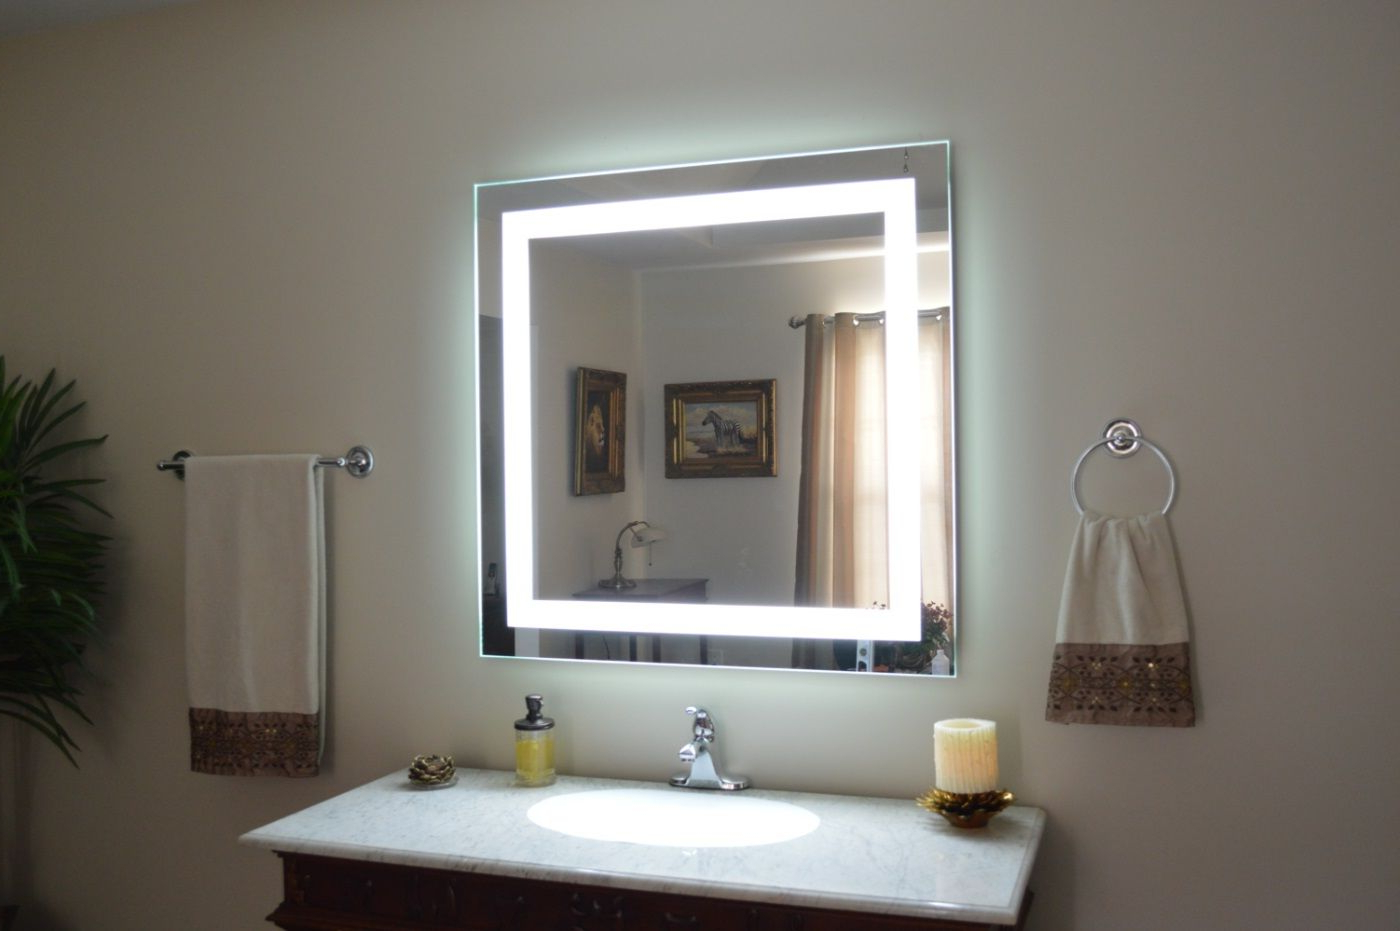 Vanity Wall Mirror With Lights – A Great Way To Light Up Inside Widely Used Make Up Wall Mirrors (Gallery 16 of 20)